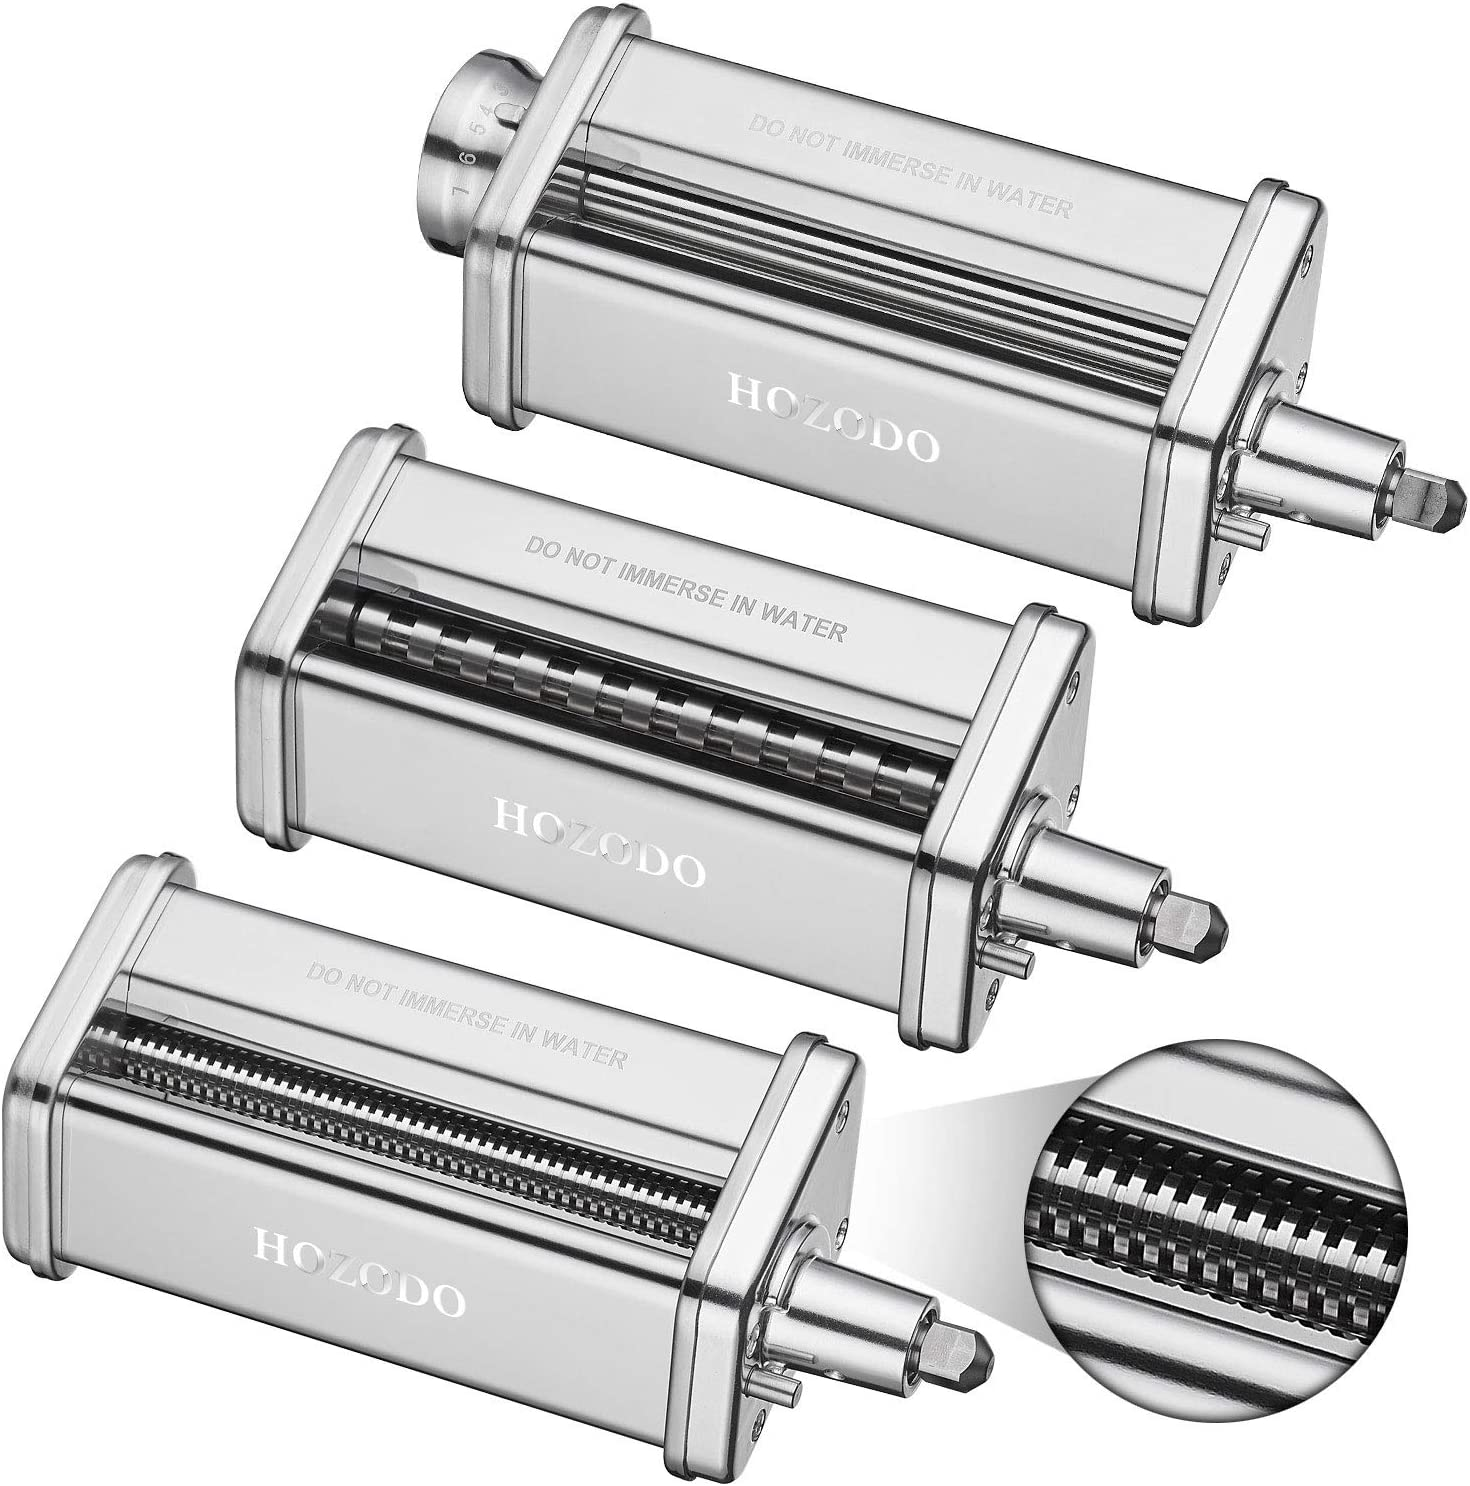 Amazon Com Pasta Maker Machine For Kitchenaid Mixer Attachments With 3 Pieces Pasta Roller And Cutter Set As Kitchenaid Mixer Accessories By Hozodo Kitchen Dining